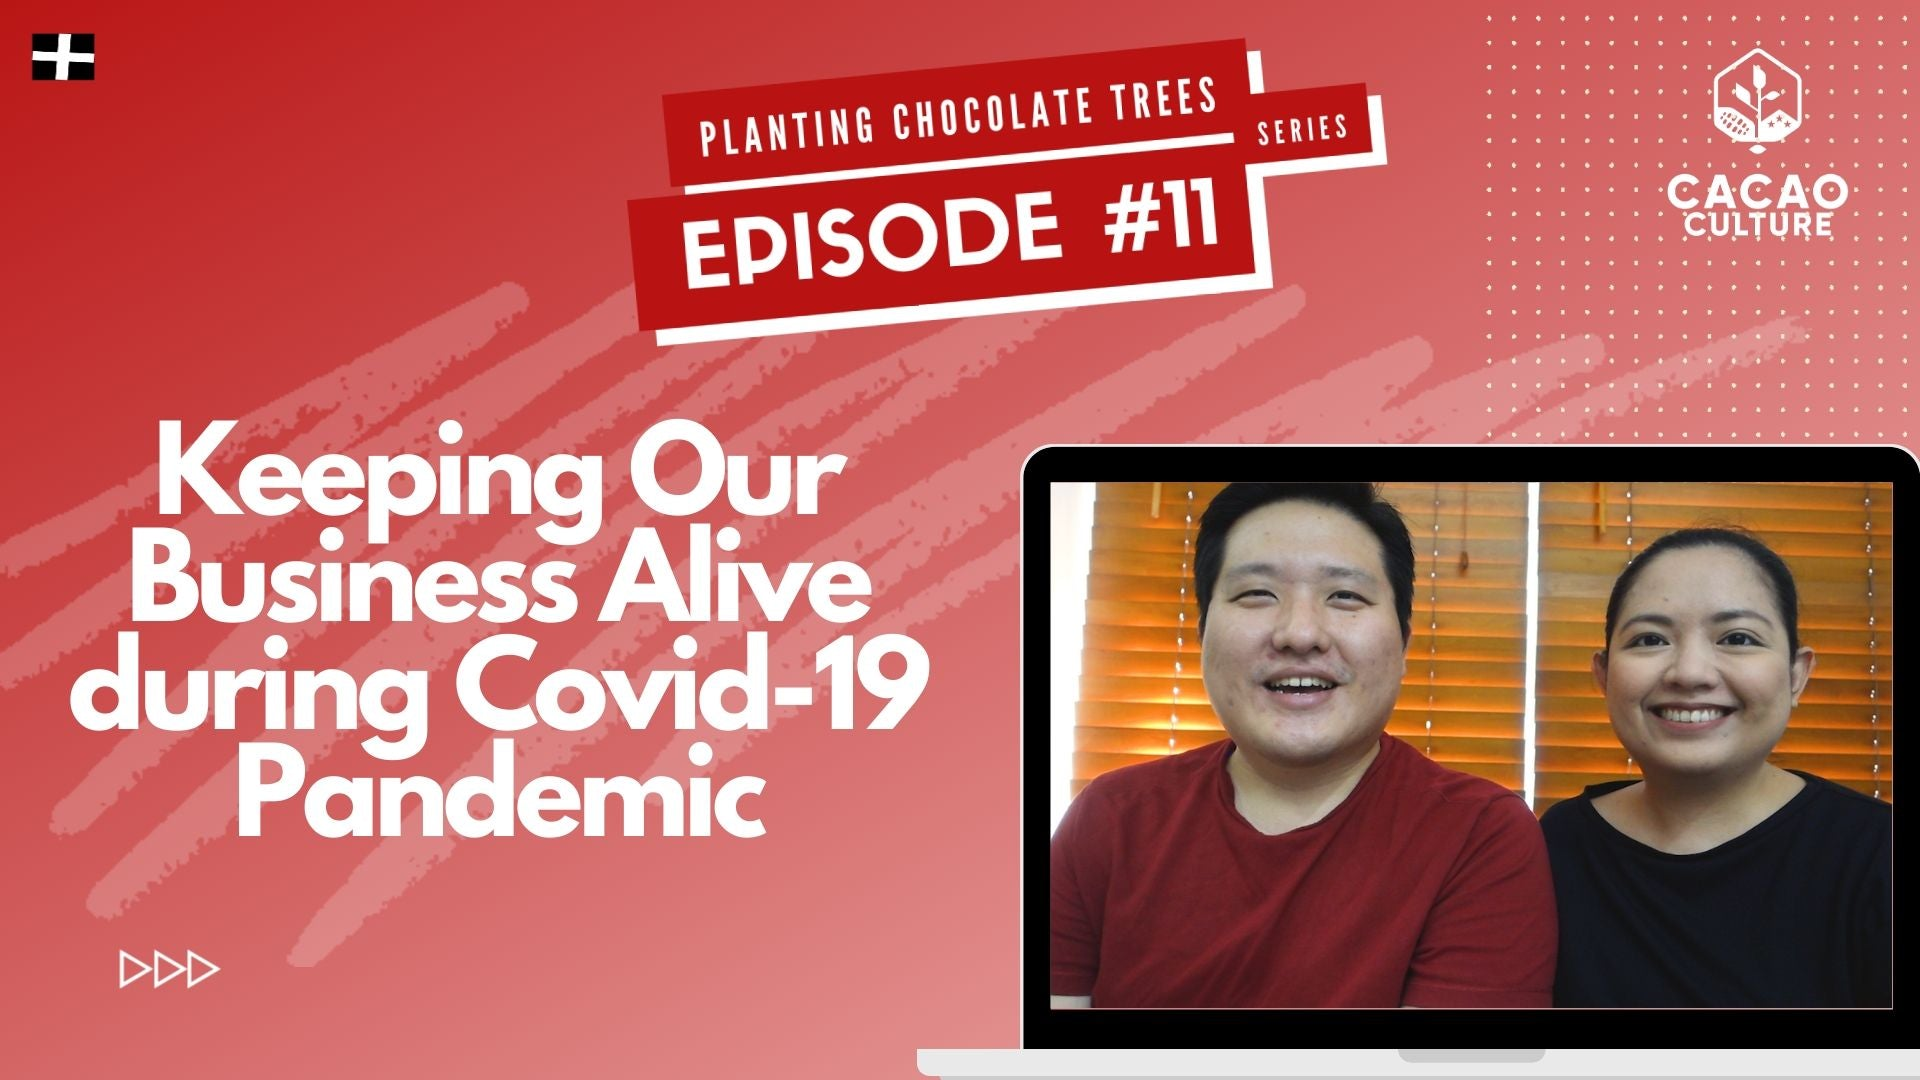 Planting Chocolate Trees Episode #11: How to Keep Your Business Alive During Covid-19 Pandemic